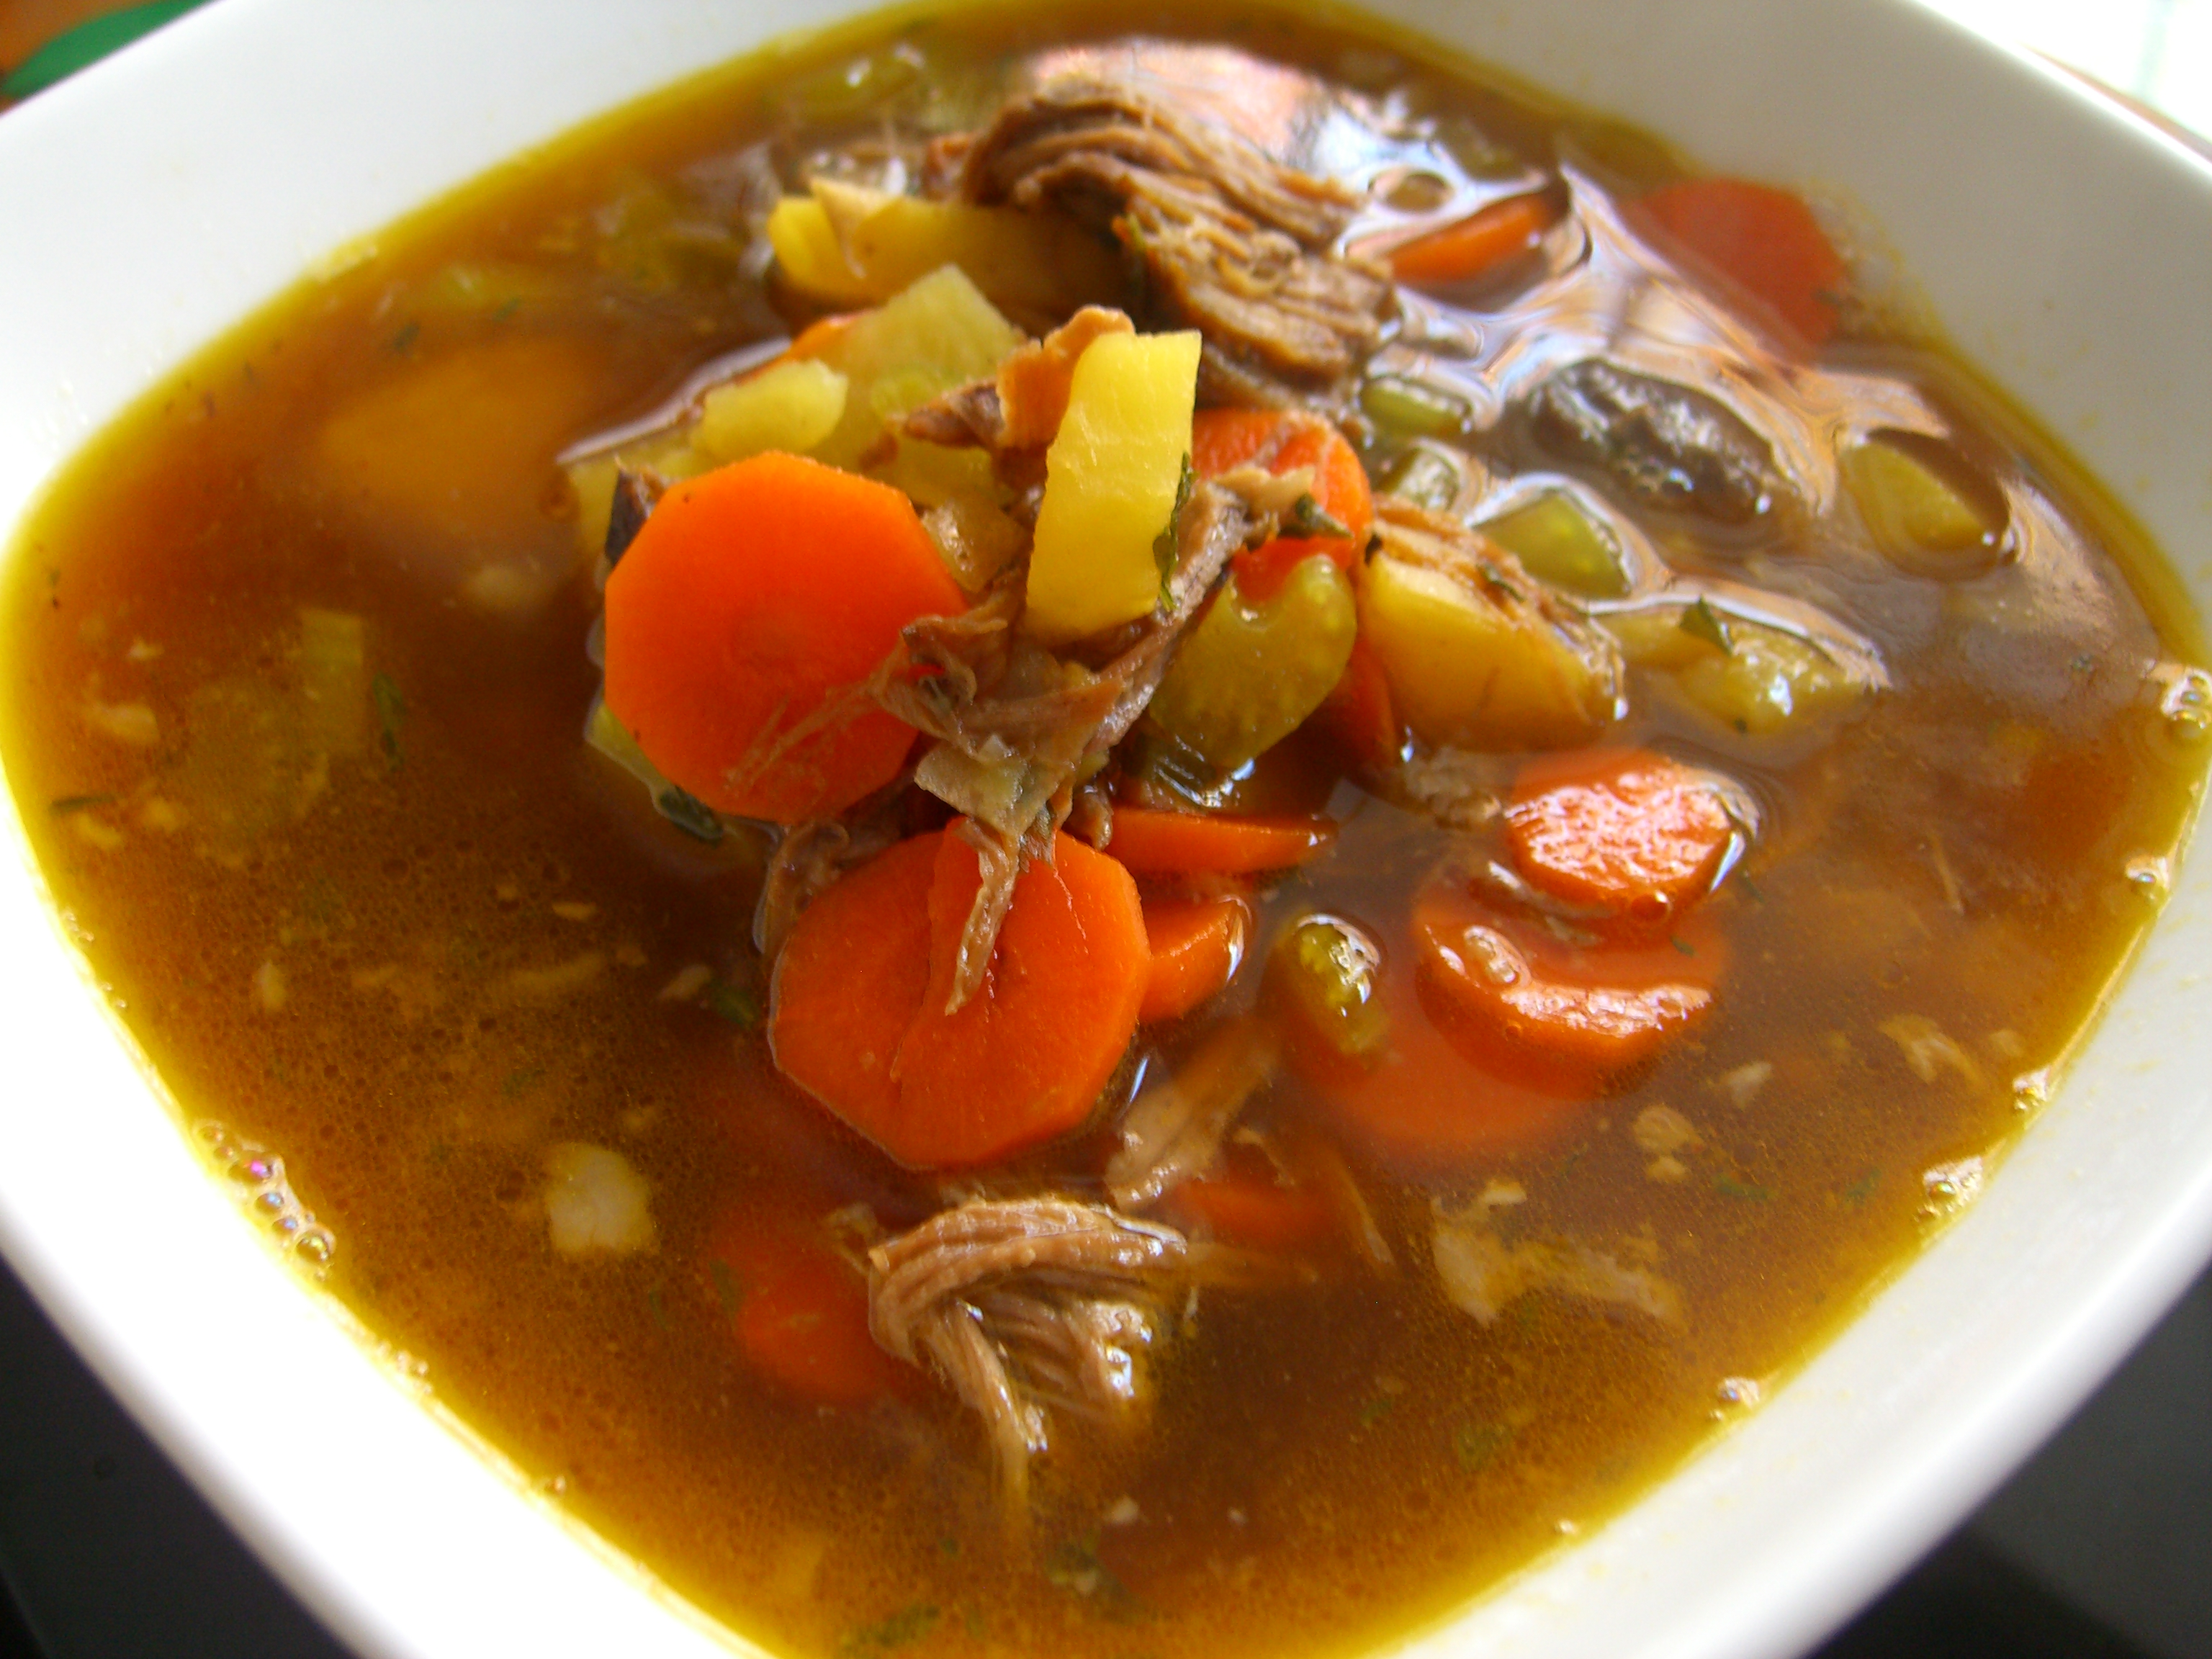 Vegetable soup recipe food network 7000 recipes garden vegetable soup recipe alton brown recipes food network forumfinder Image collections